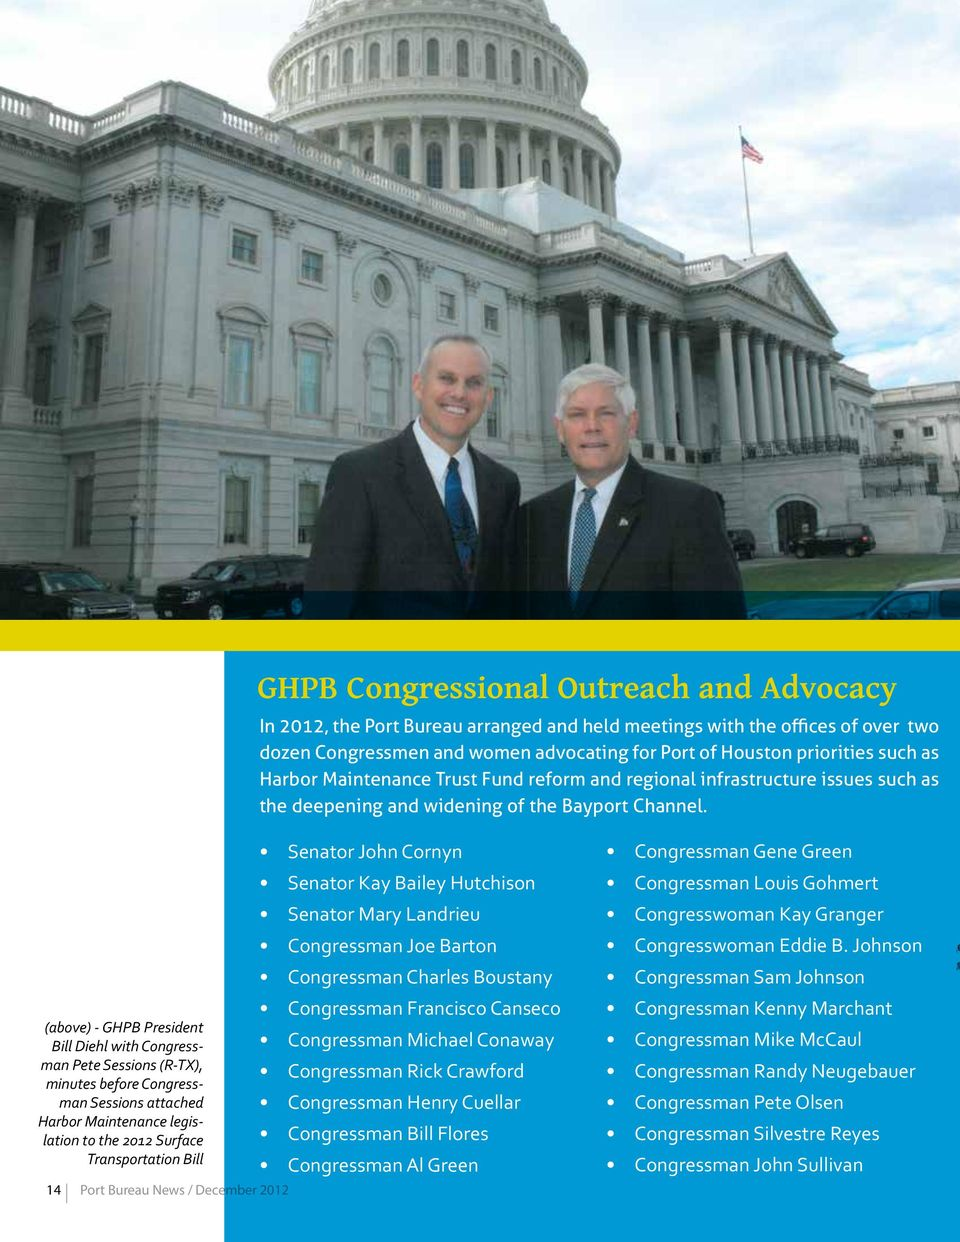 (above) - GHPB President Bill Diehl with Congressman Pete Sessions (R-TX), minutes before Congressman Sessions attached Harbor Maintenance legislation to the 2012 Surface Transportation Bill 14 Port